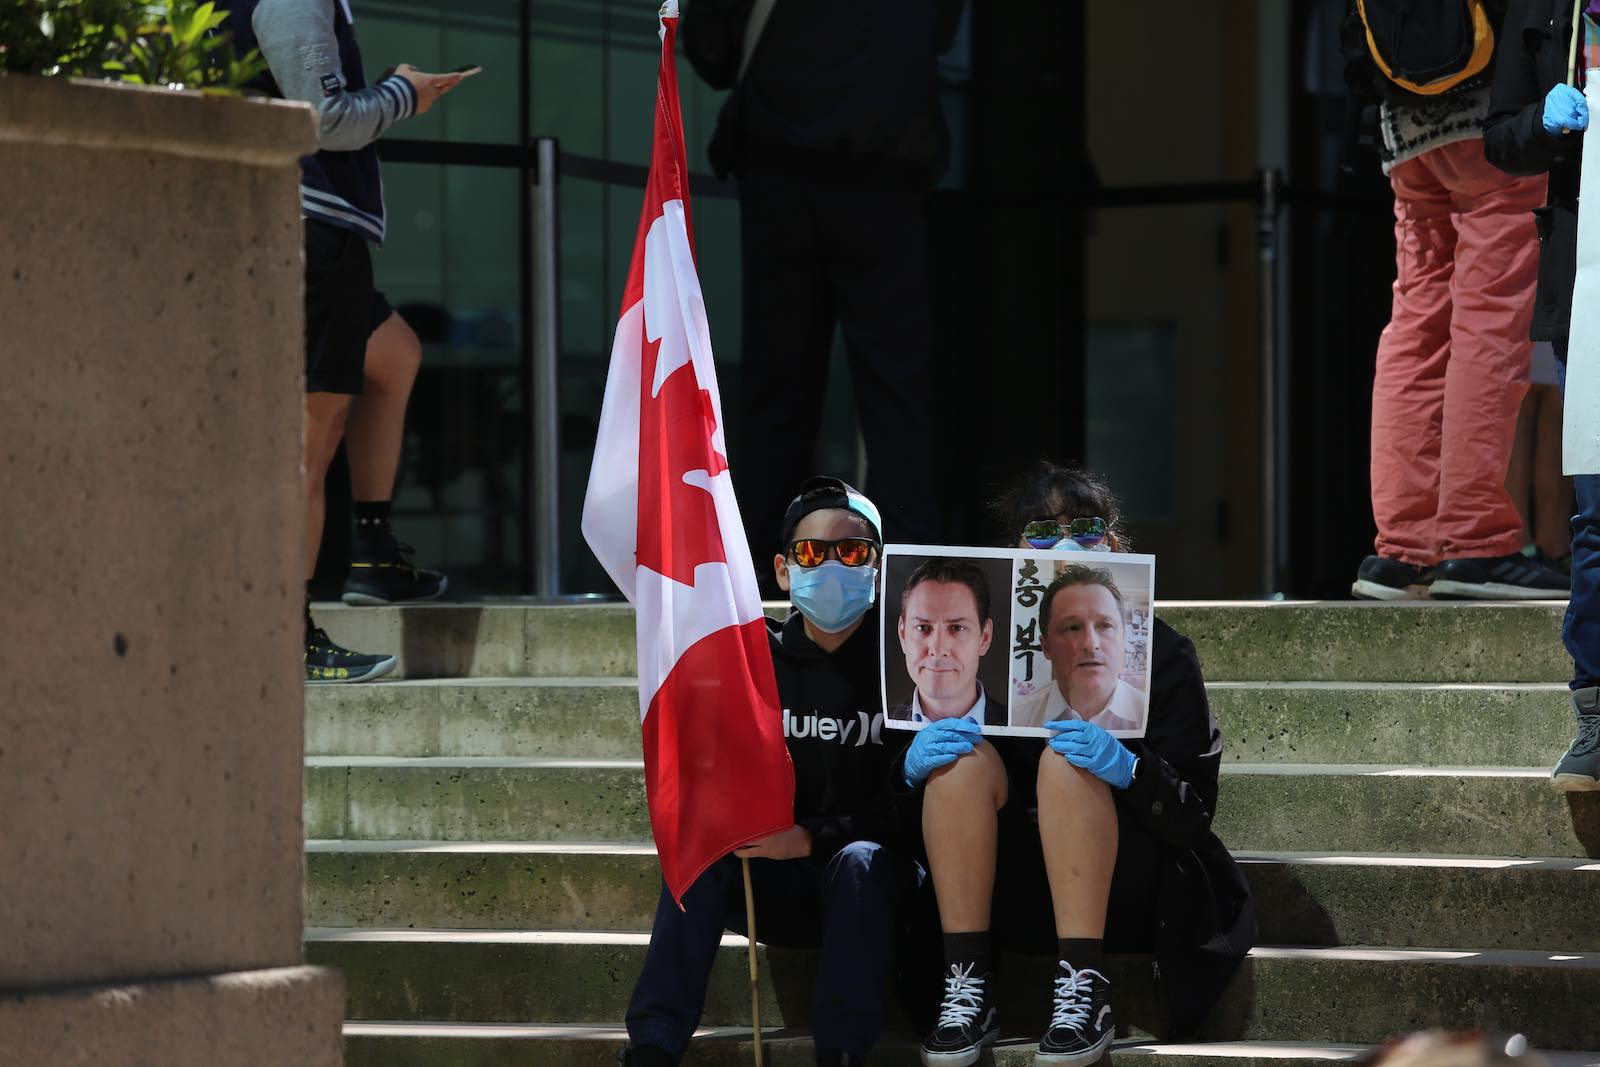 Protesters outside a court hearing for Meng Wanzou hold pictures of Michael Kovrig and Michael Spavor, Vancouver, Canada, 27 May 2020 (Mert Alper Dervis/Anadolu Agency via Getty Images)